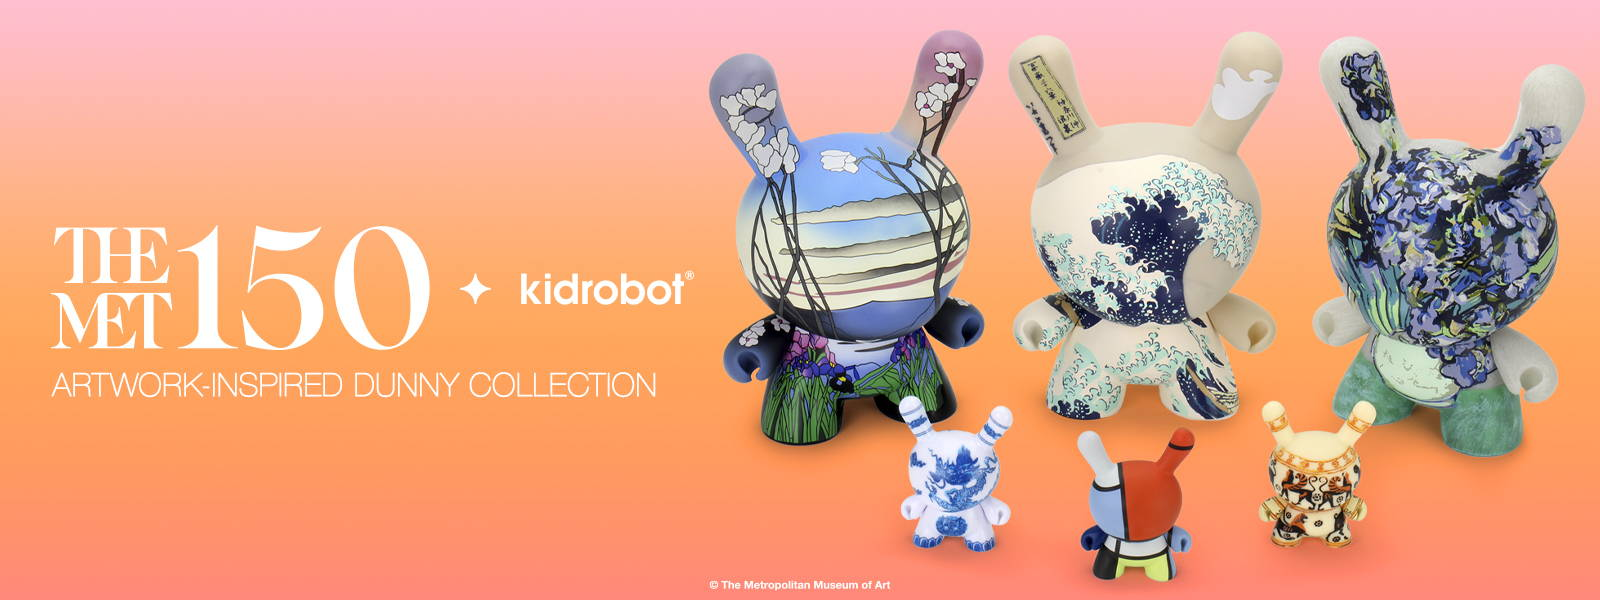 Kidrobot x The MET Dunny Art Toy Figures